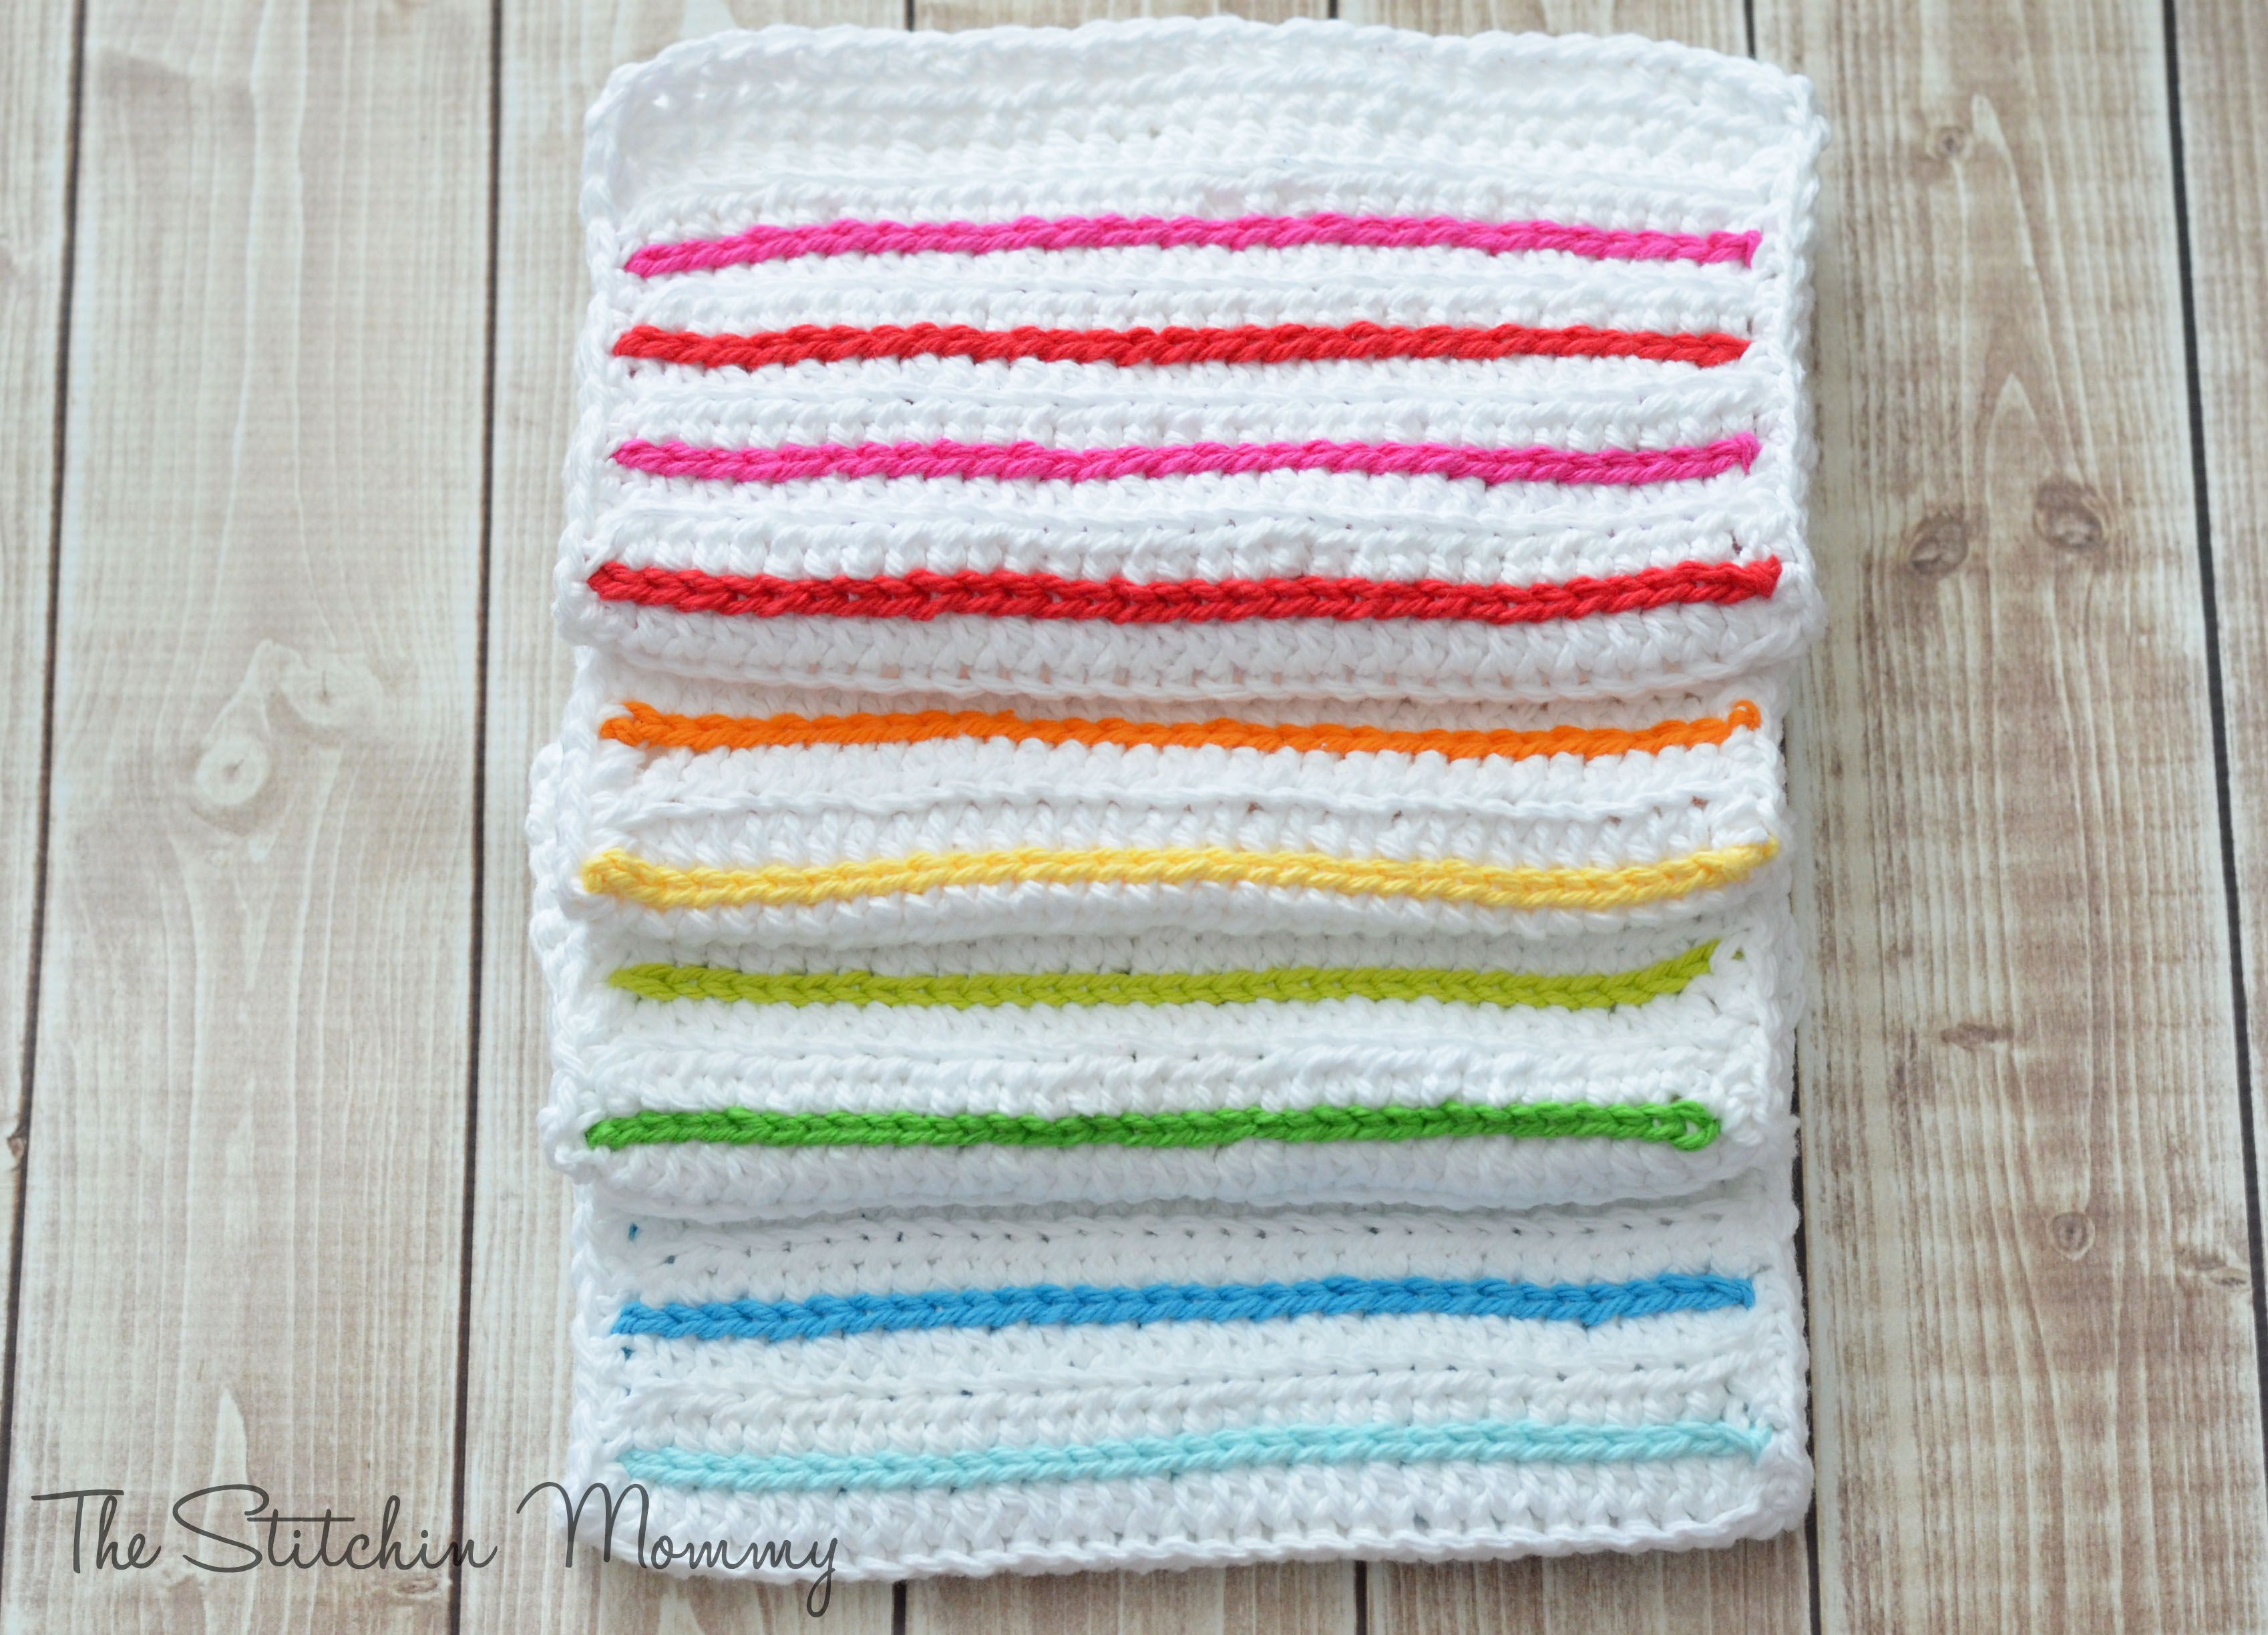 Crochet Striped Dishcloths Crochet Knitting Ideas Pinterest